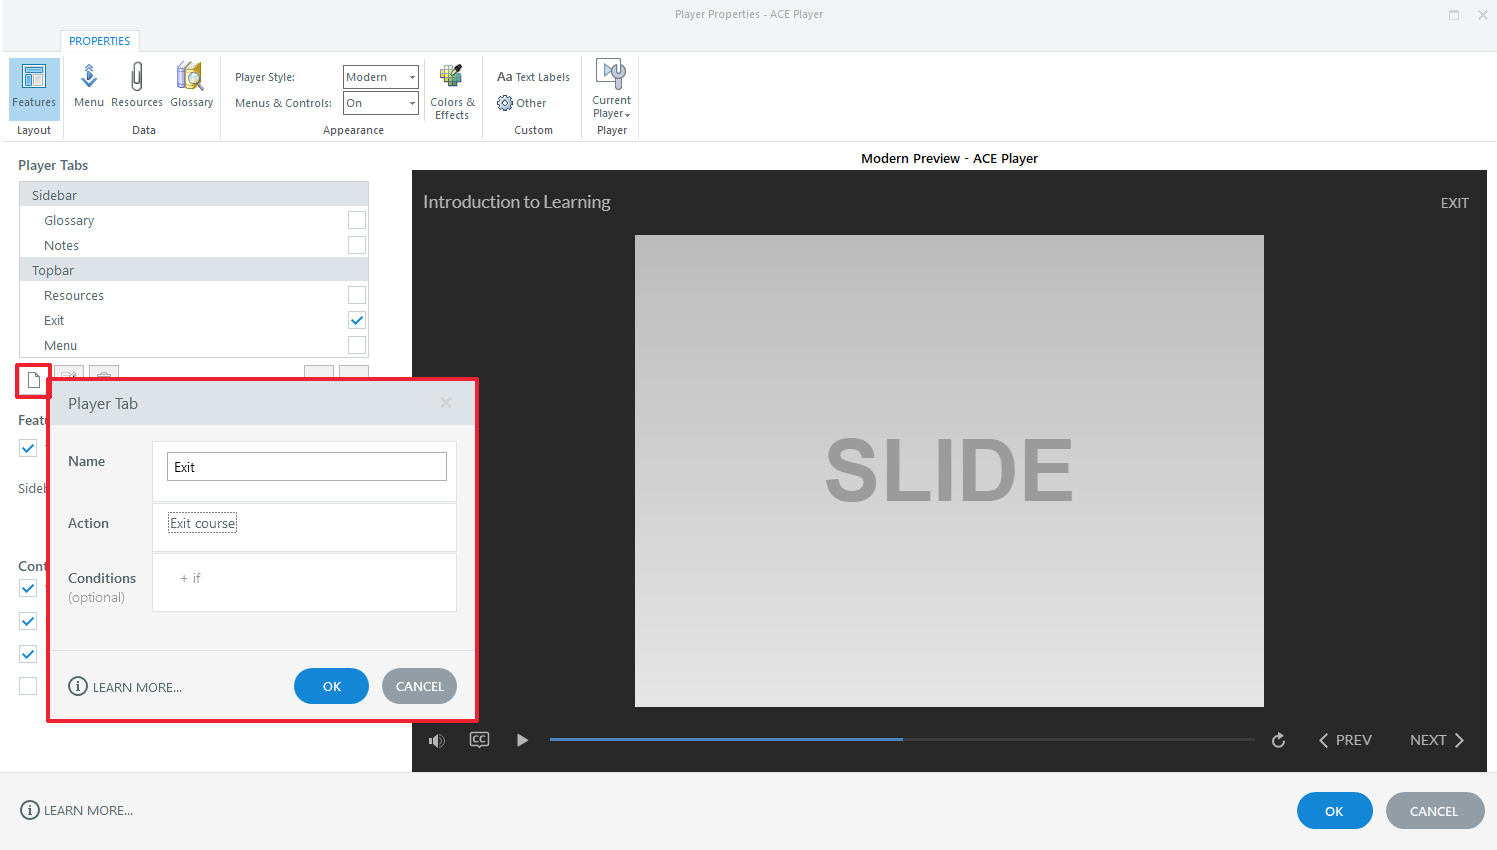 Storyline 360 Exit course button